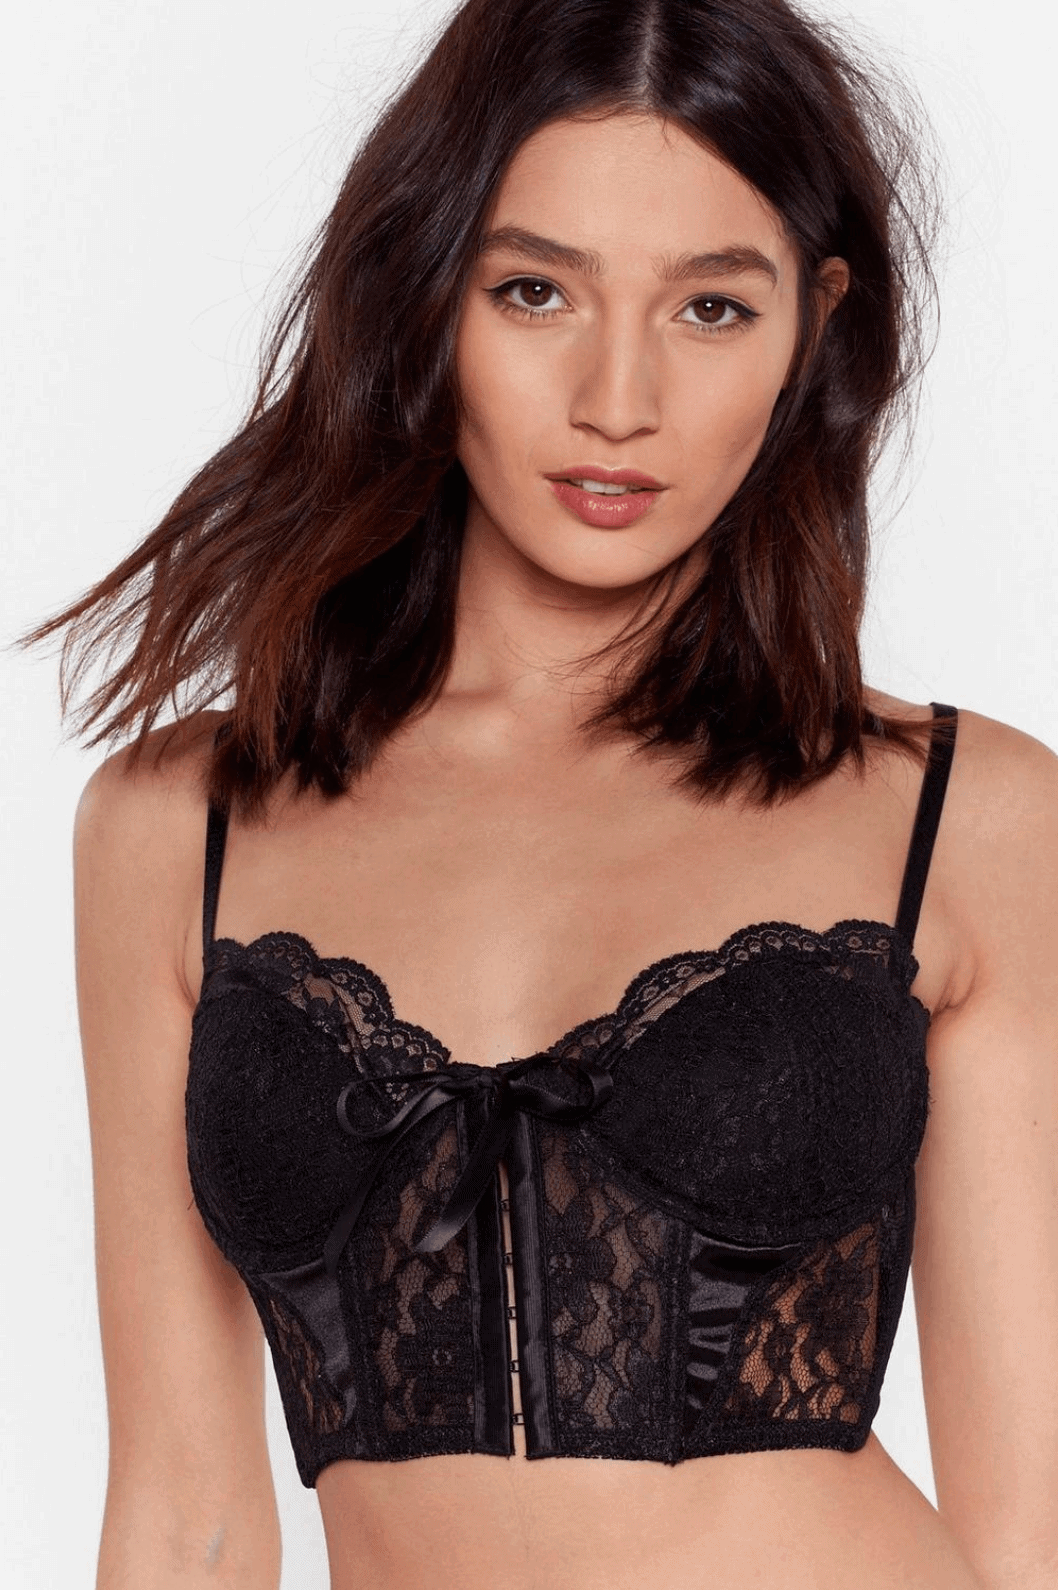 DIY Bridal Shower Gift for the Bride Signals of Love Lace Longline Bralette